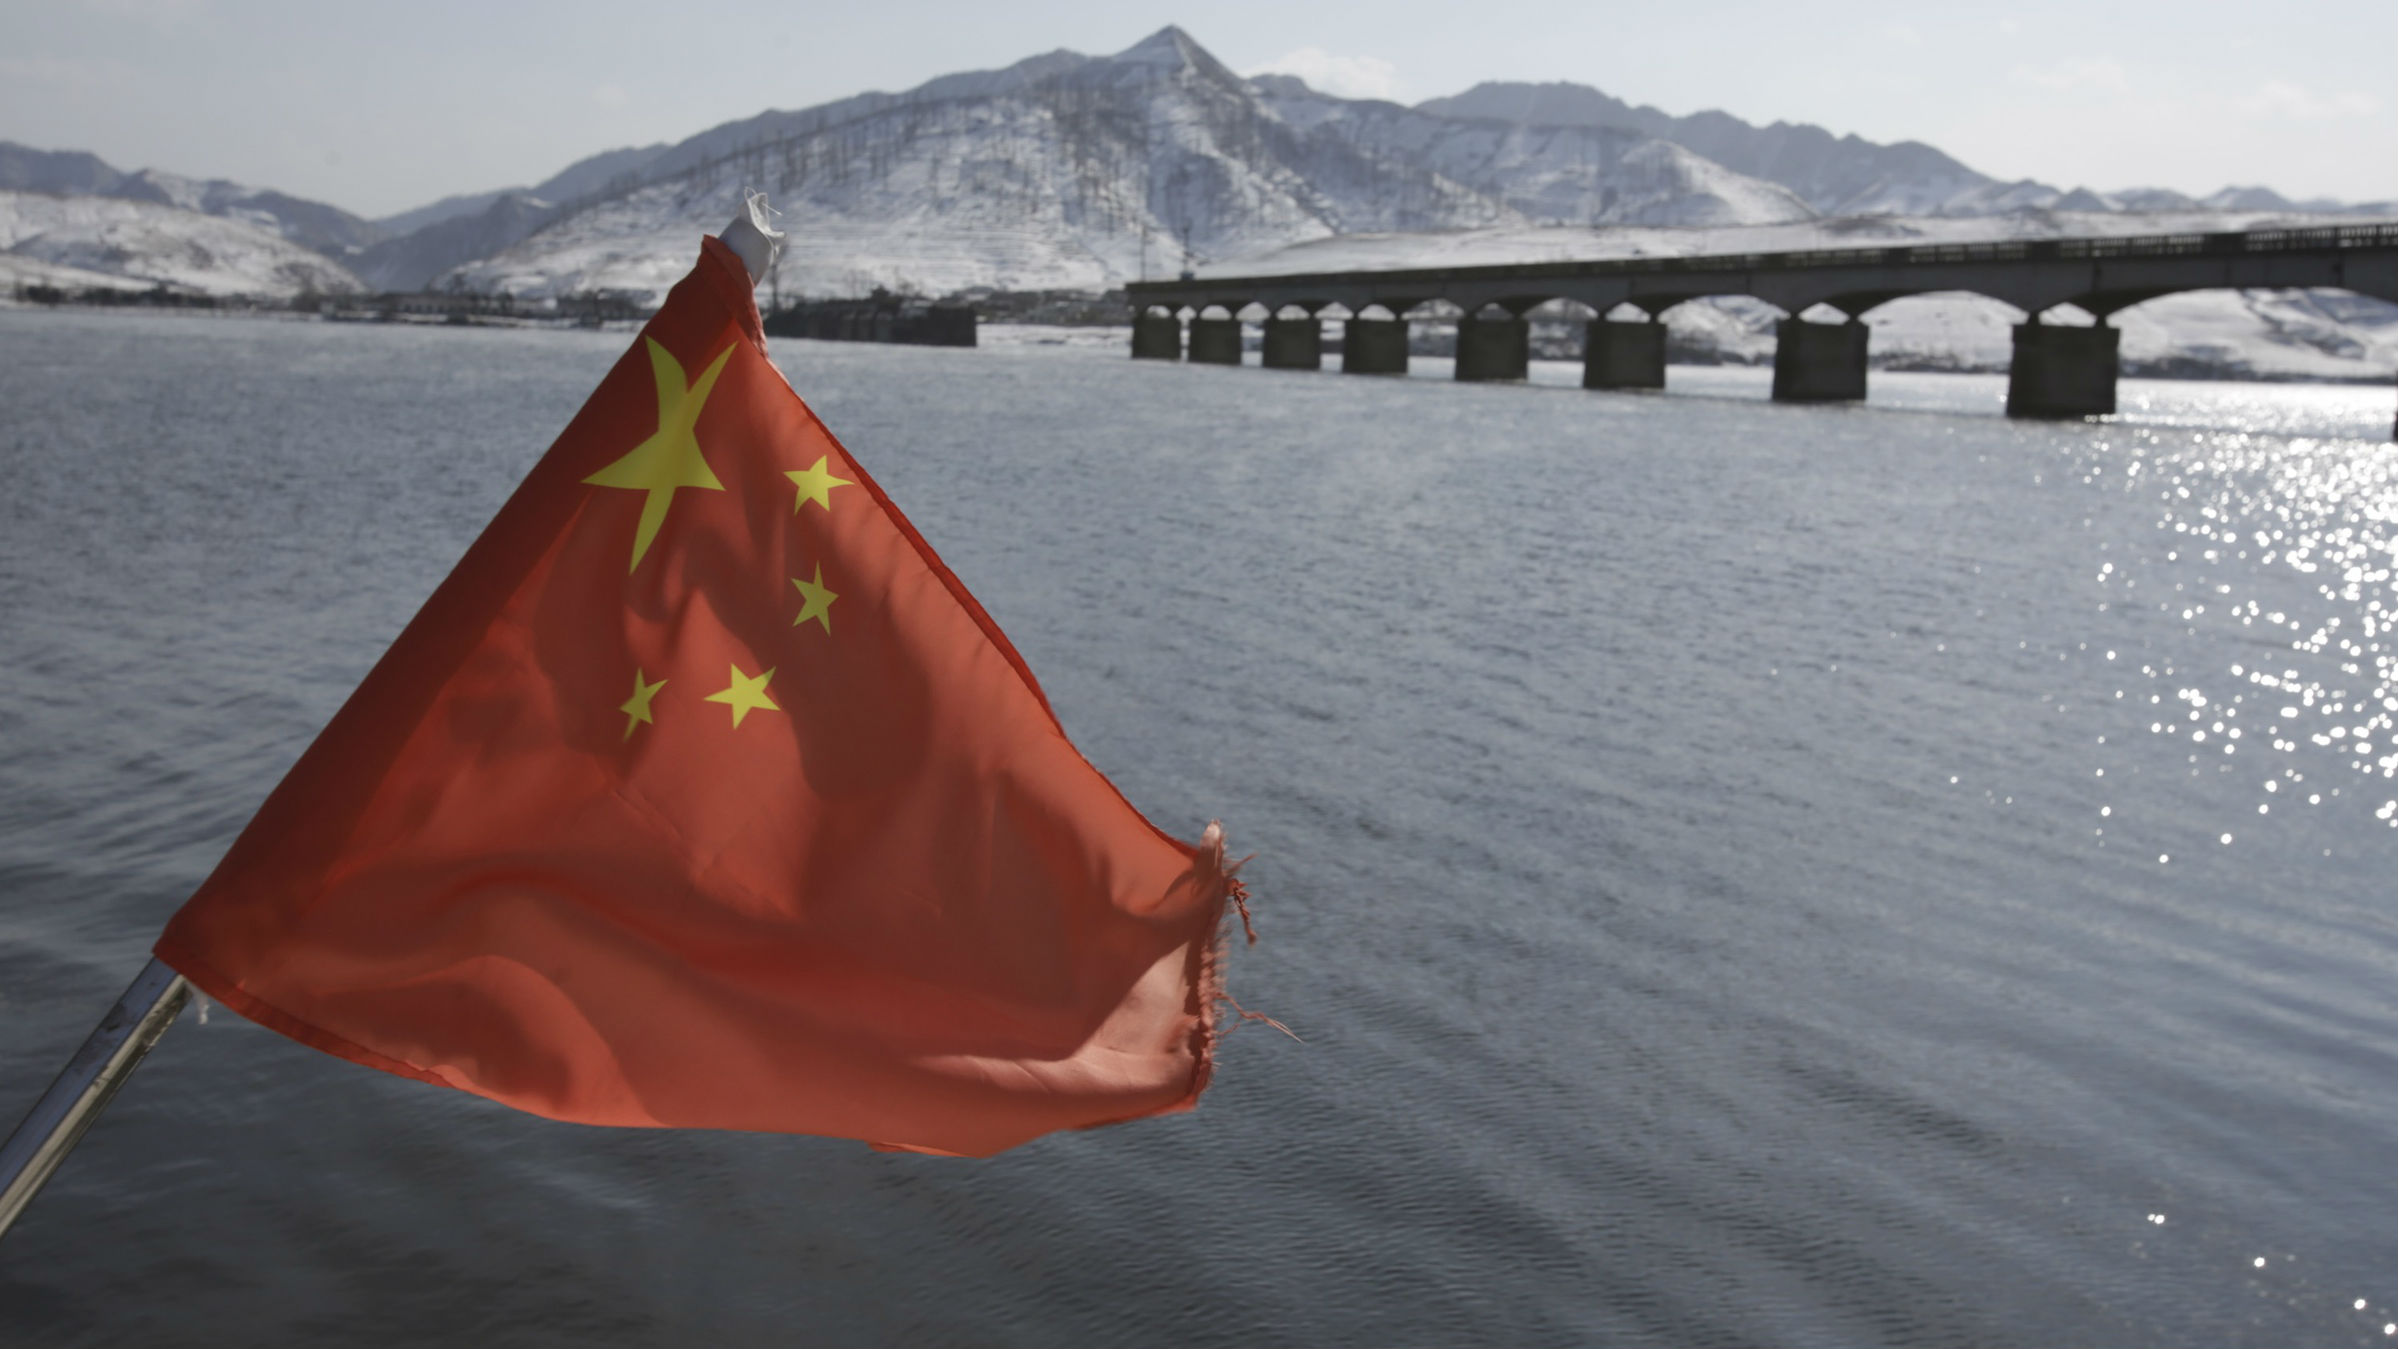 A Chinese flag is hoisted near the Hekou Bridge, right, linking China and North Korea, which was bombed in the 1950's during the Korean War, in Hekou, China on Thursday, Feb. 7, 2013. North Korea vowed last month to carry out its third nuclear test but has said nothing about timing. As a result, the building suspense in Seoul has prompted many to look at the dates Pyongyang has chosen for past atomic tests, as well as rocket and missile launches.